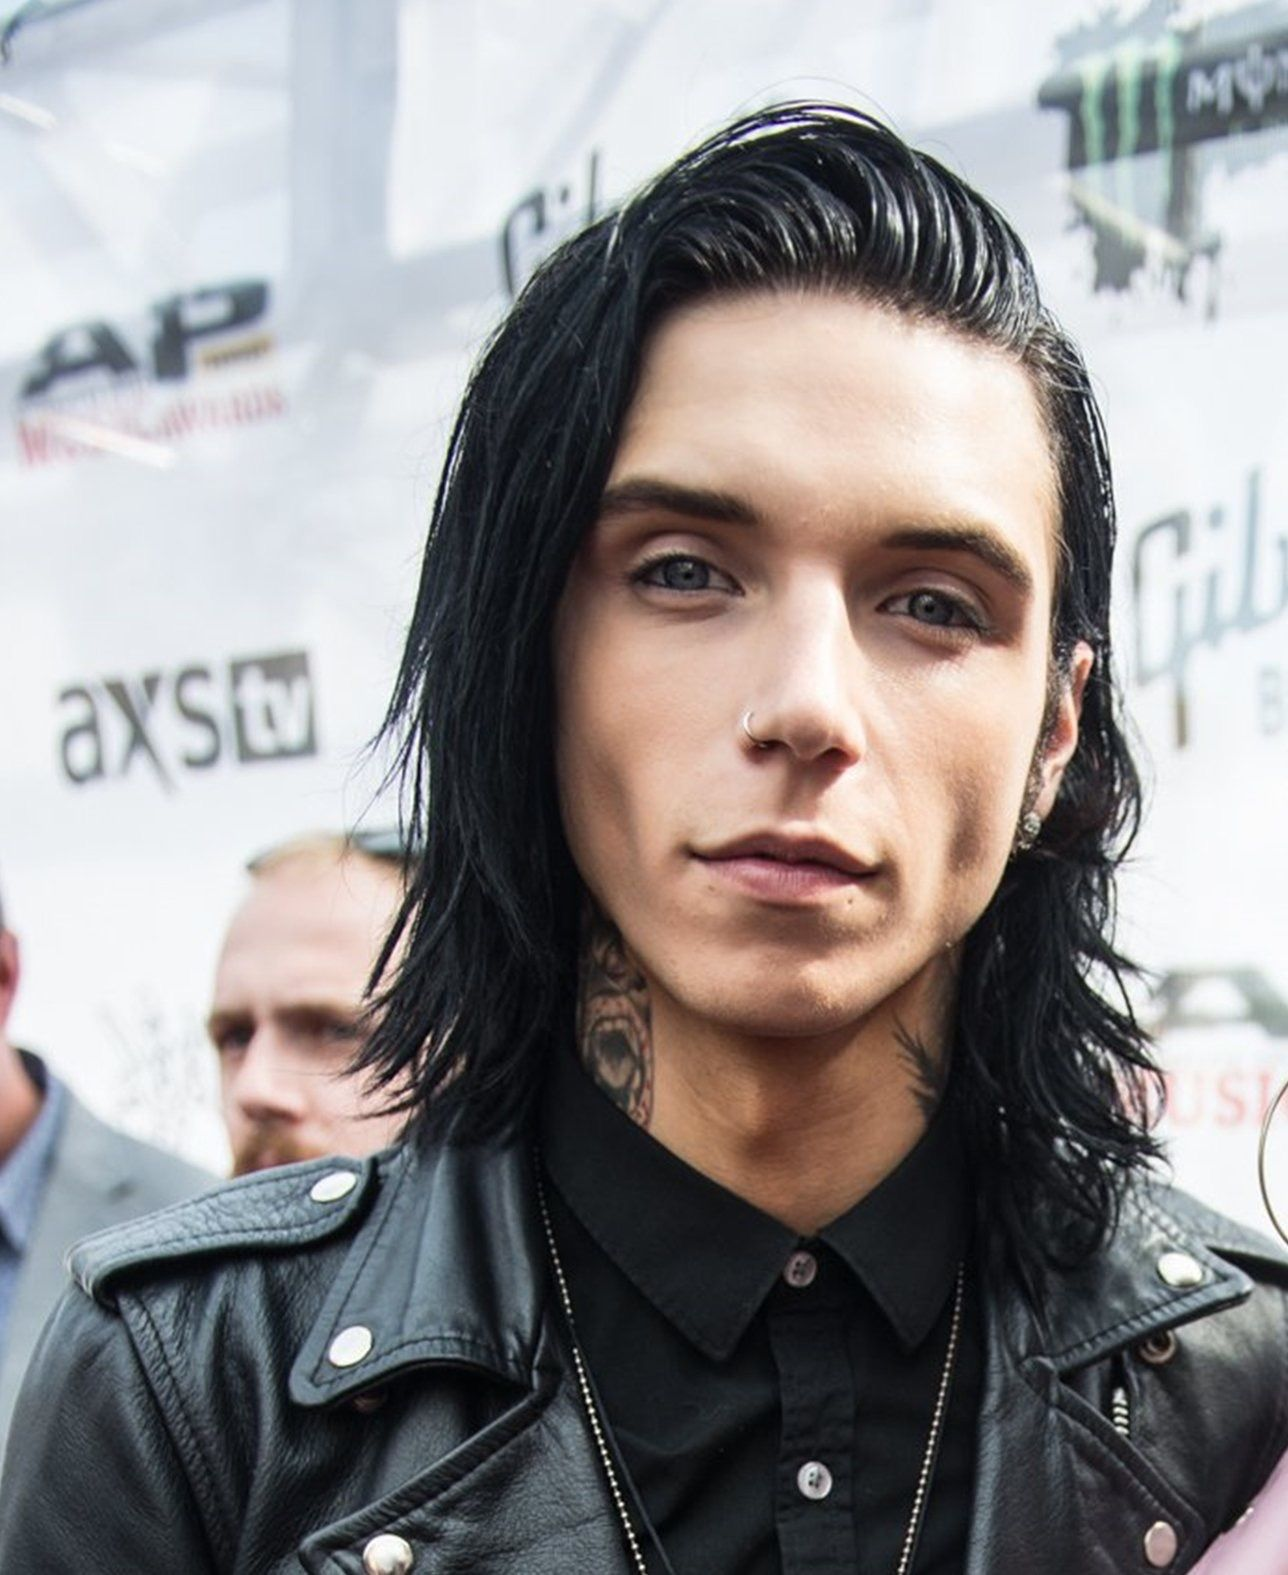 pin by josiah mcfarland on hair cut ideas | andy black, andy